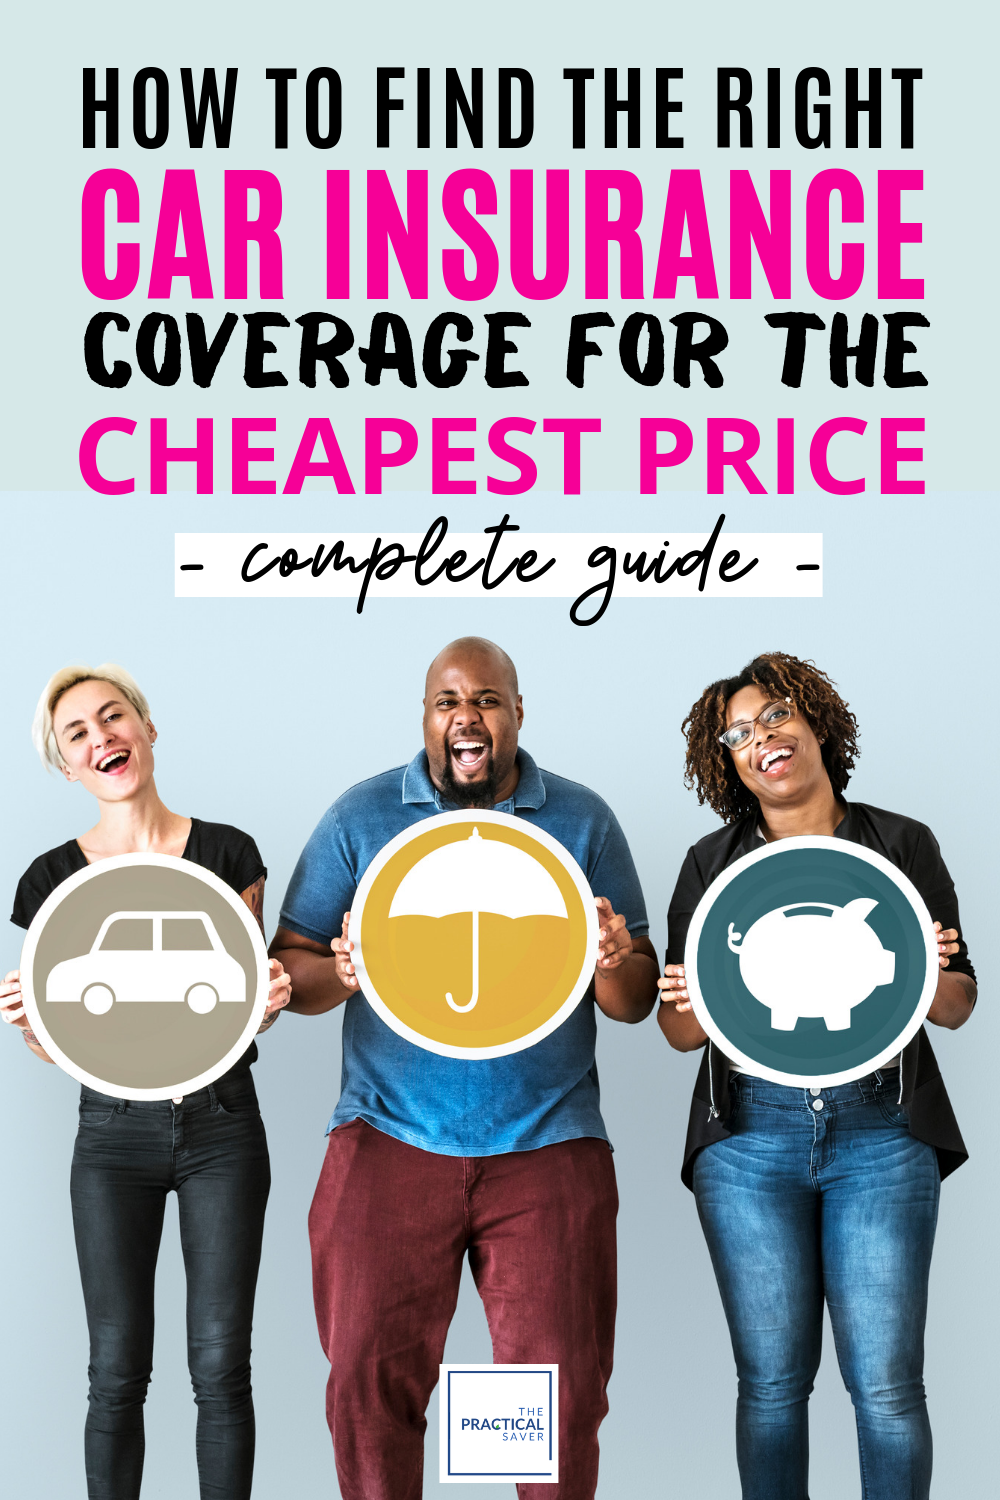 How To Find The Cheapest Car Insurance In 2019 The Complete Guide